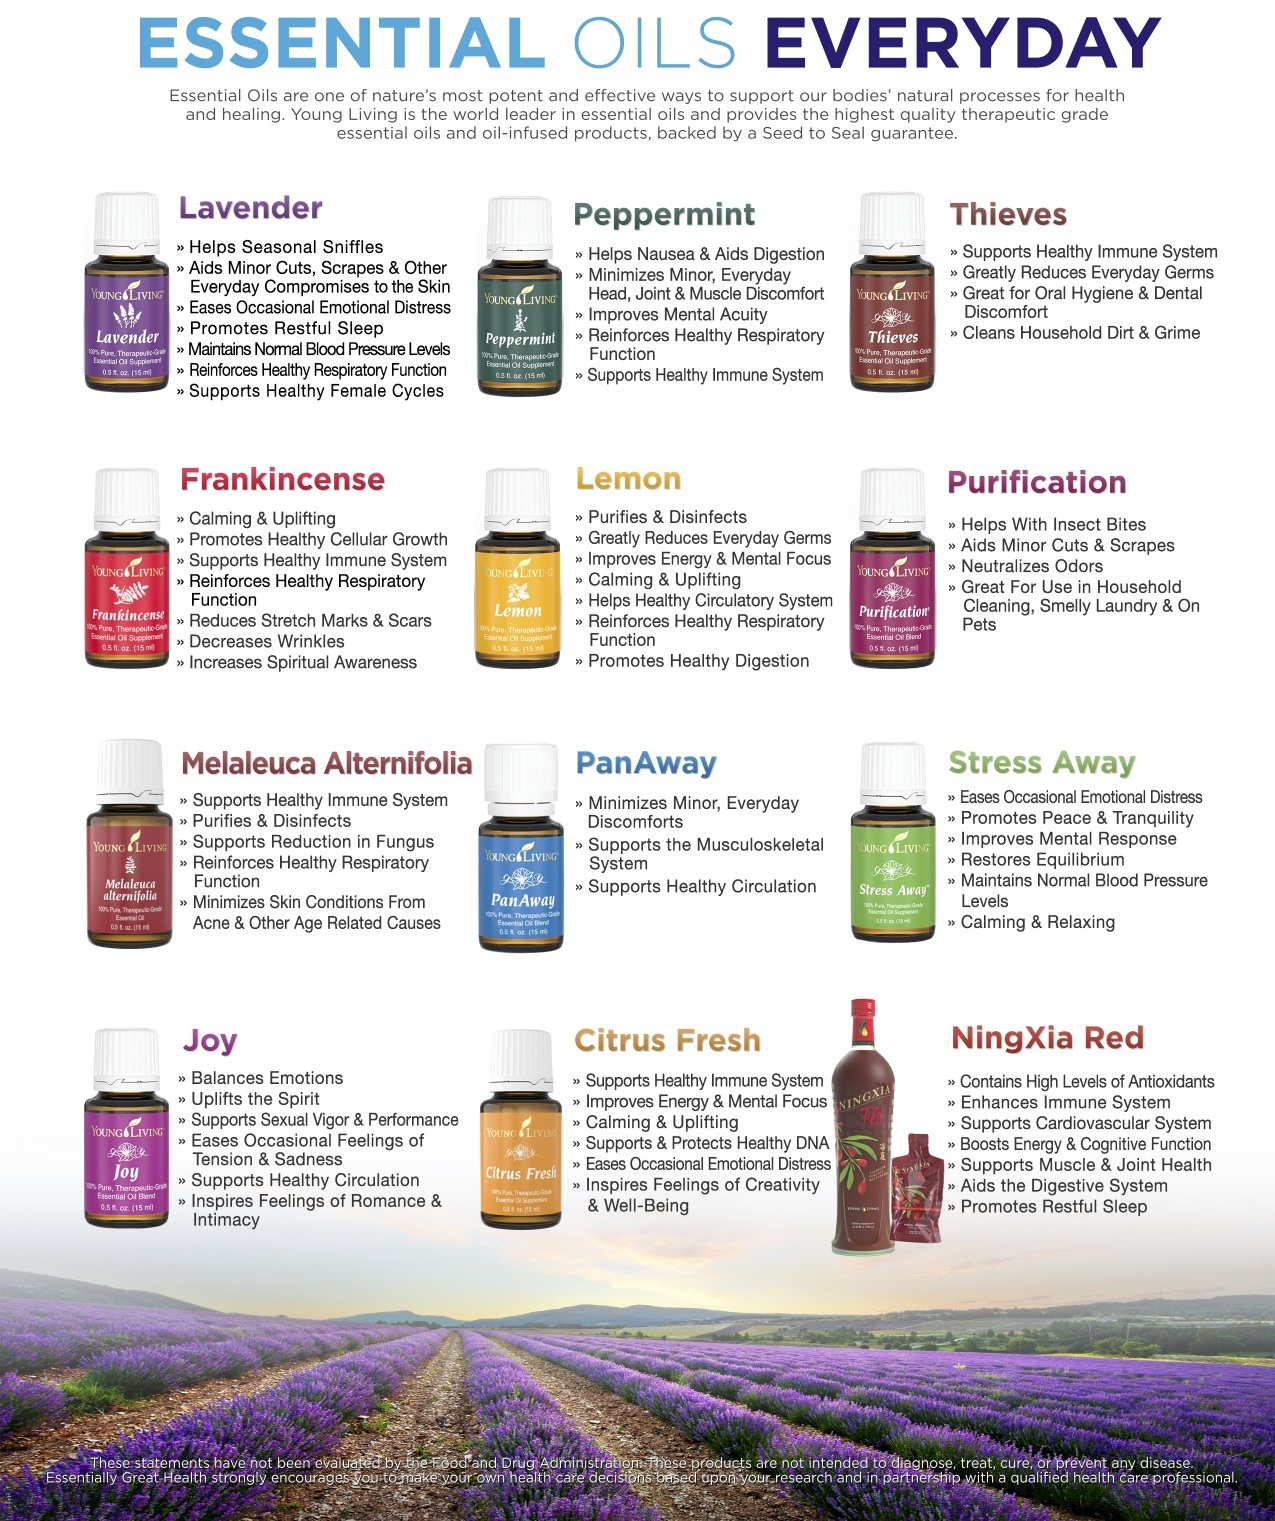 - ESSENTIAL OILS EVERYDAY USES cropped